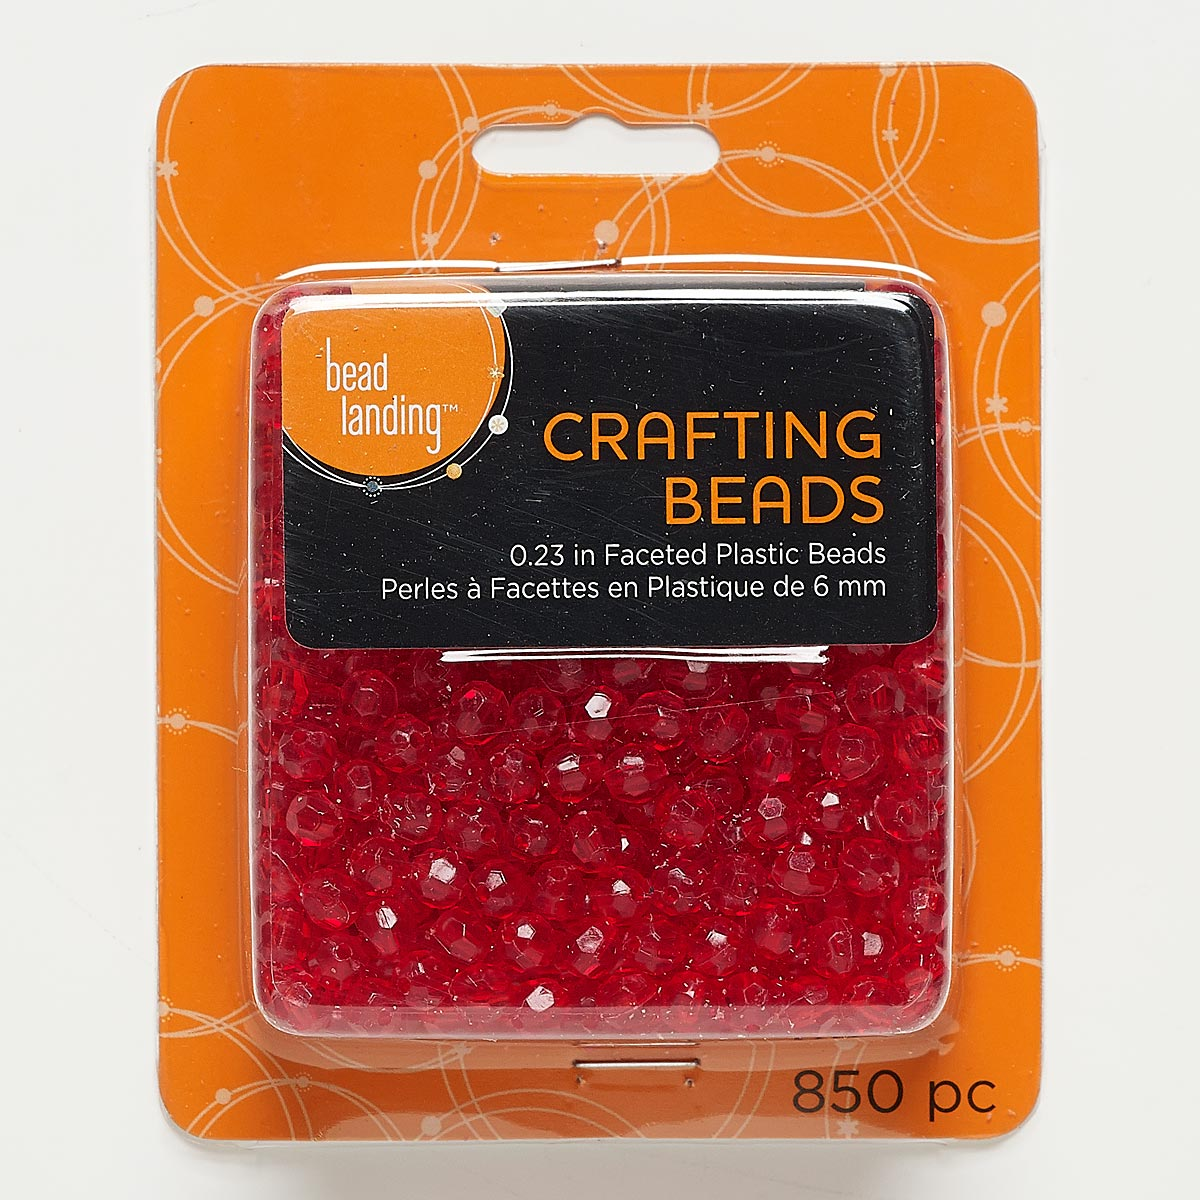 Bead landing crafting beads - Bead Acrylic Transparent Red 6mm Faceted Round Sold Per Pkg Of 850